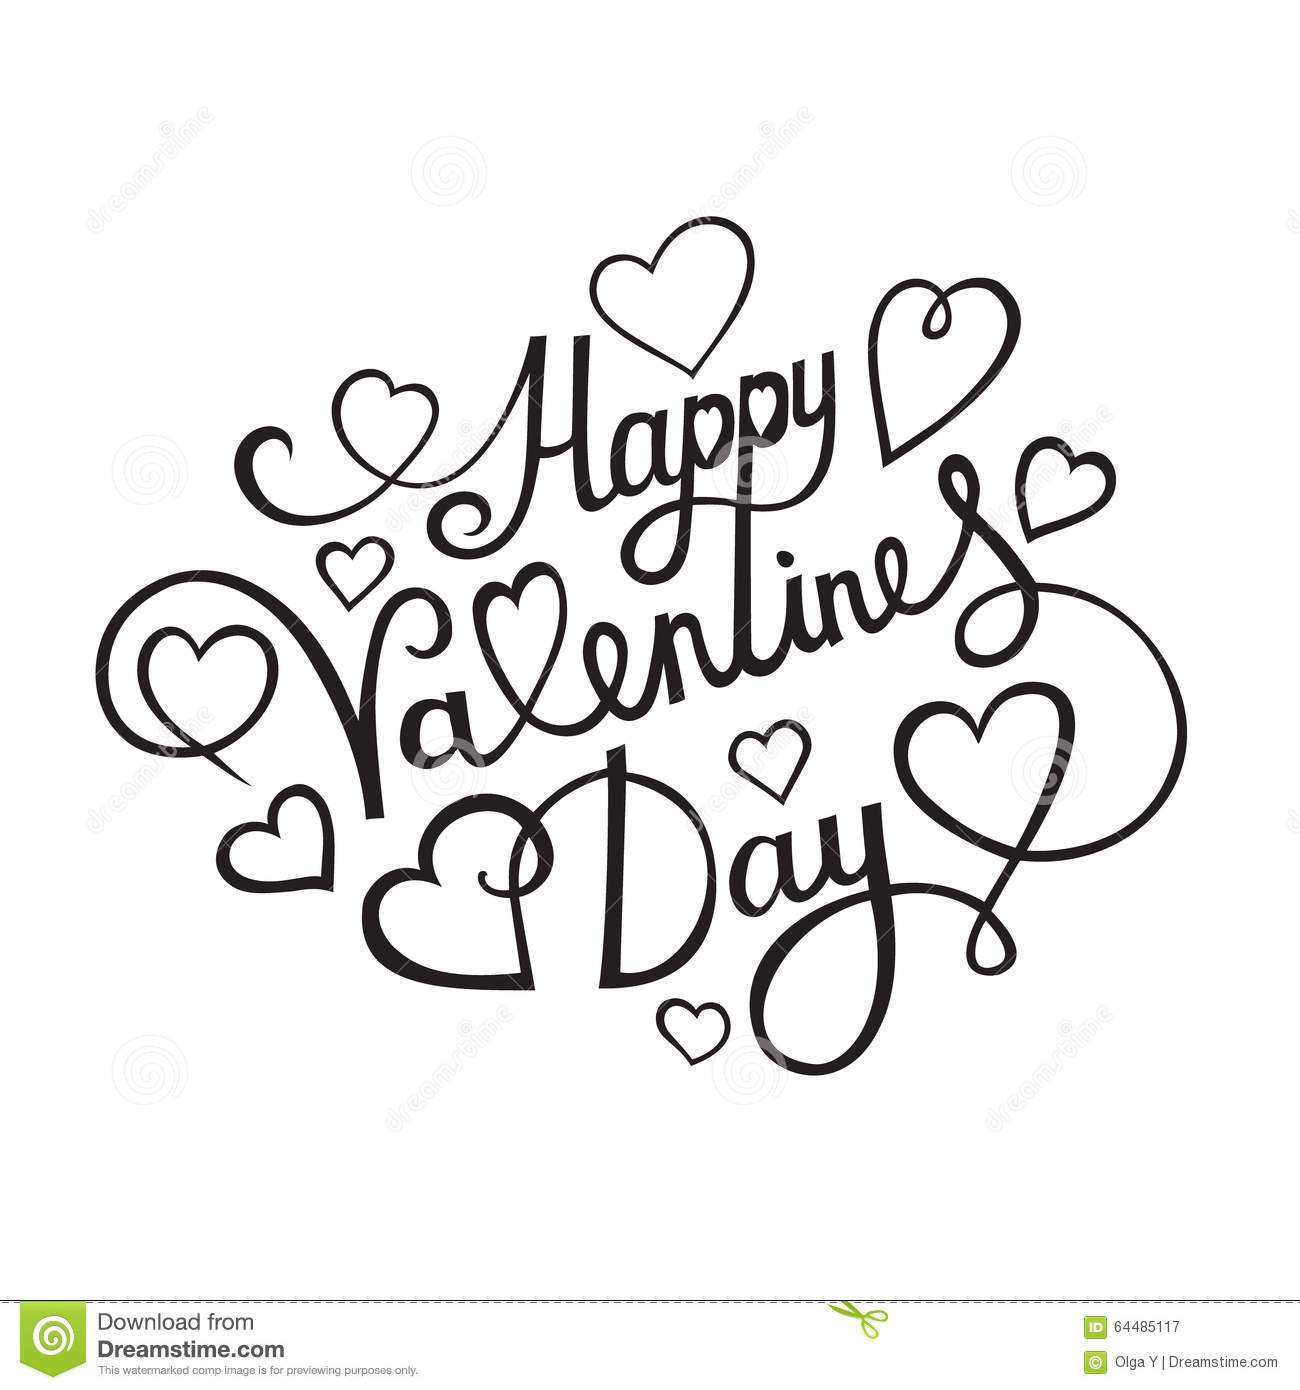 Happy valentines day clipart black and white 4 » Clipart Portal.